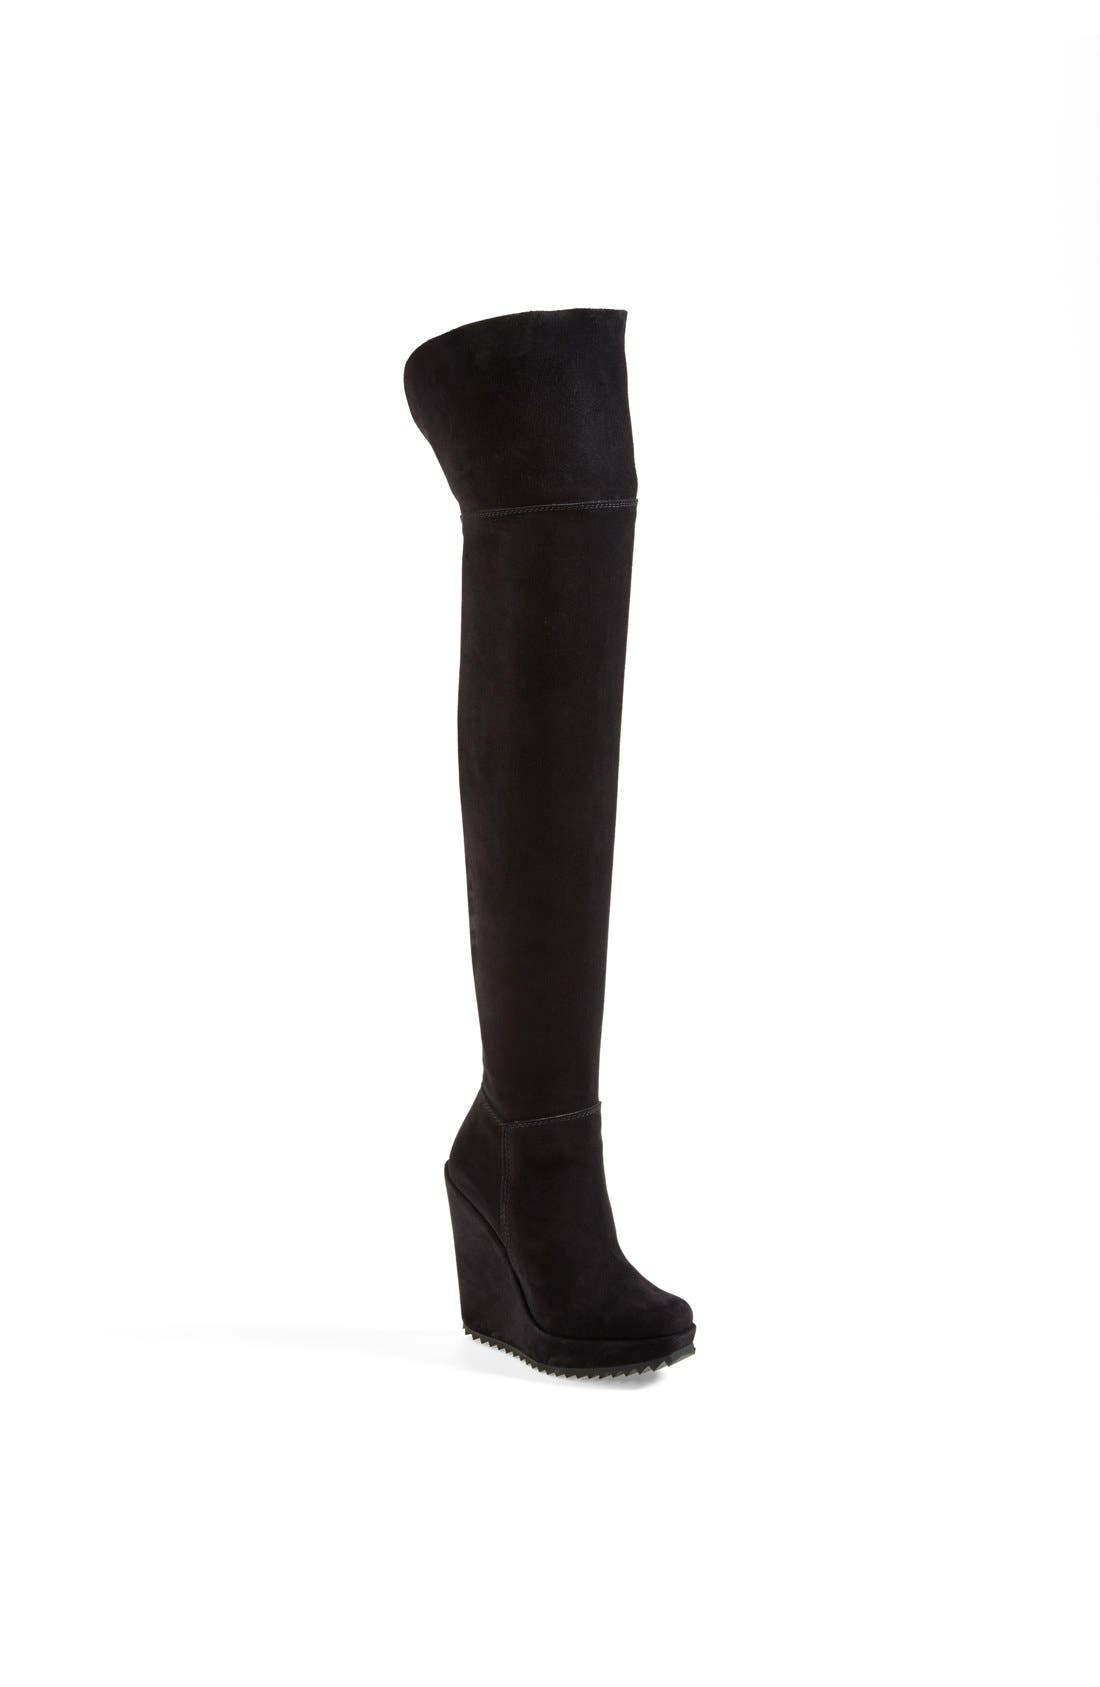 'Vanne' Over-the-Knee Boot,                         Main,                         color, Black